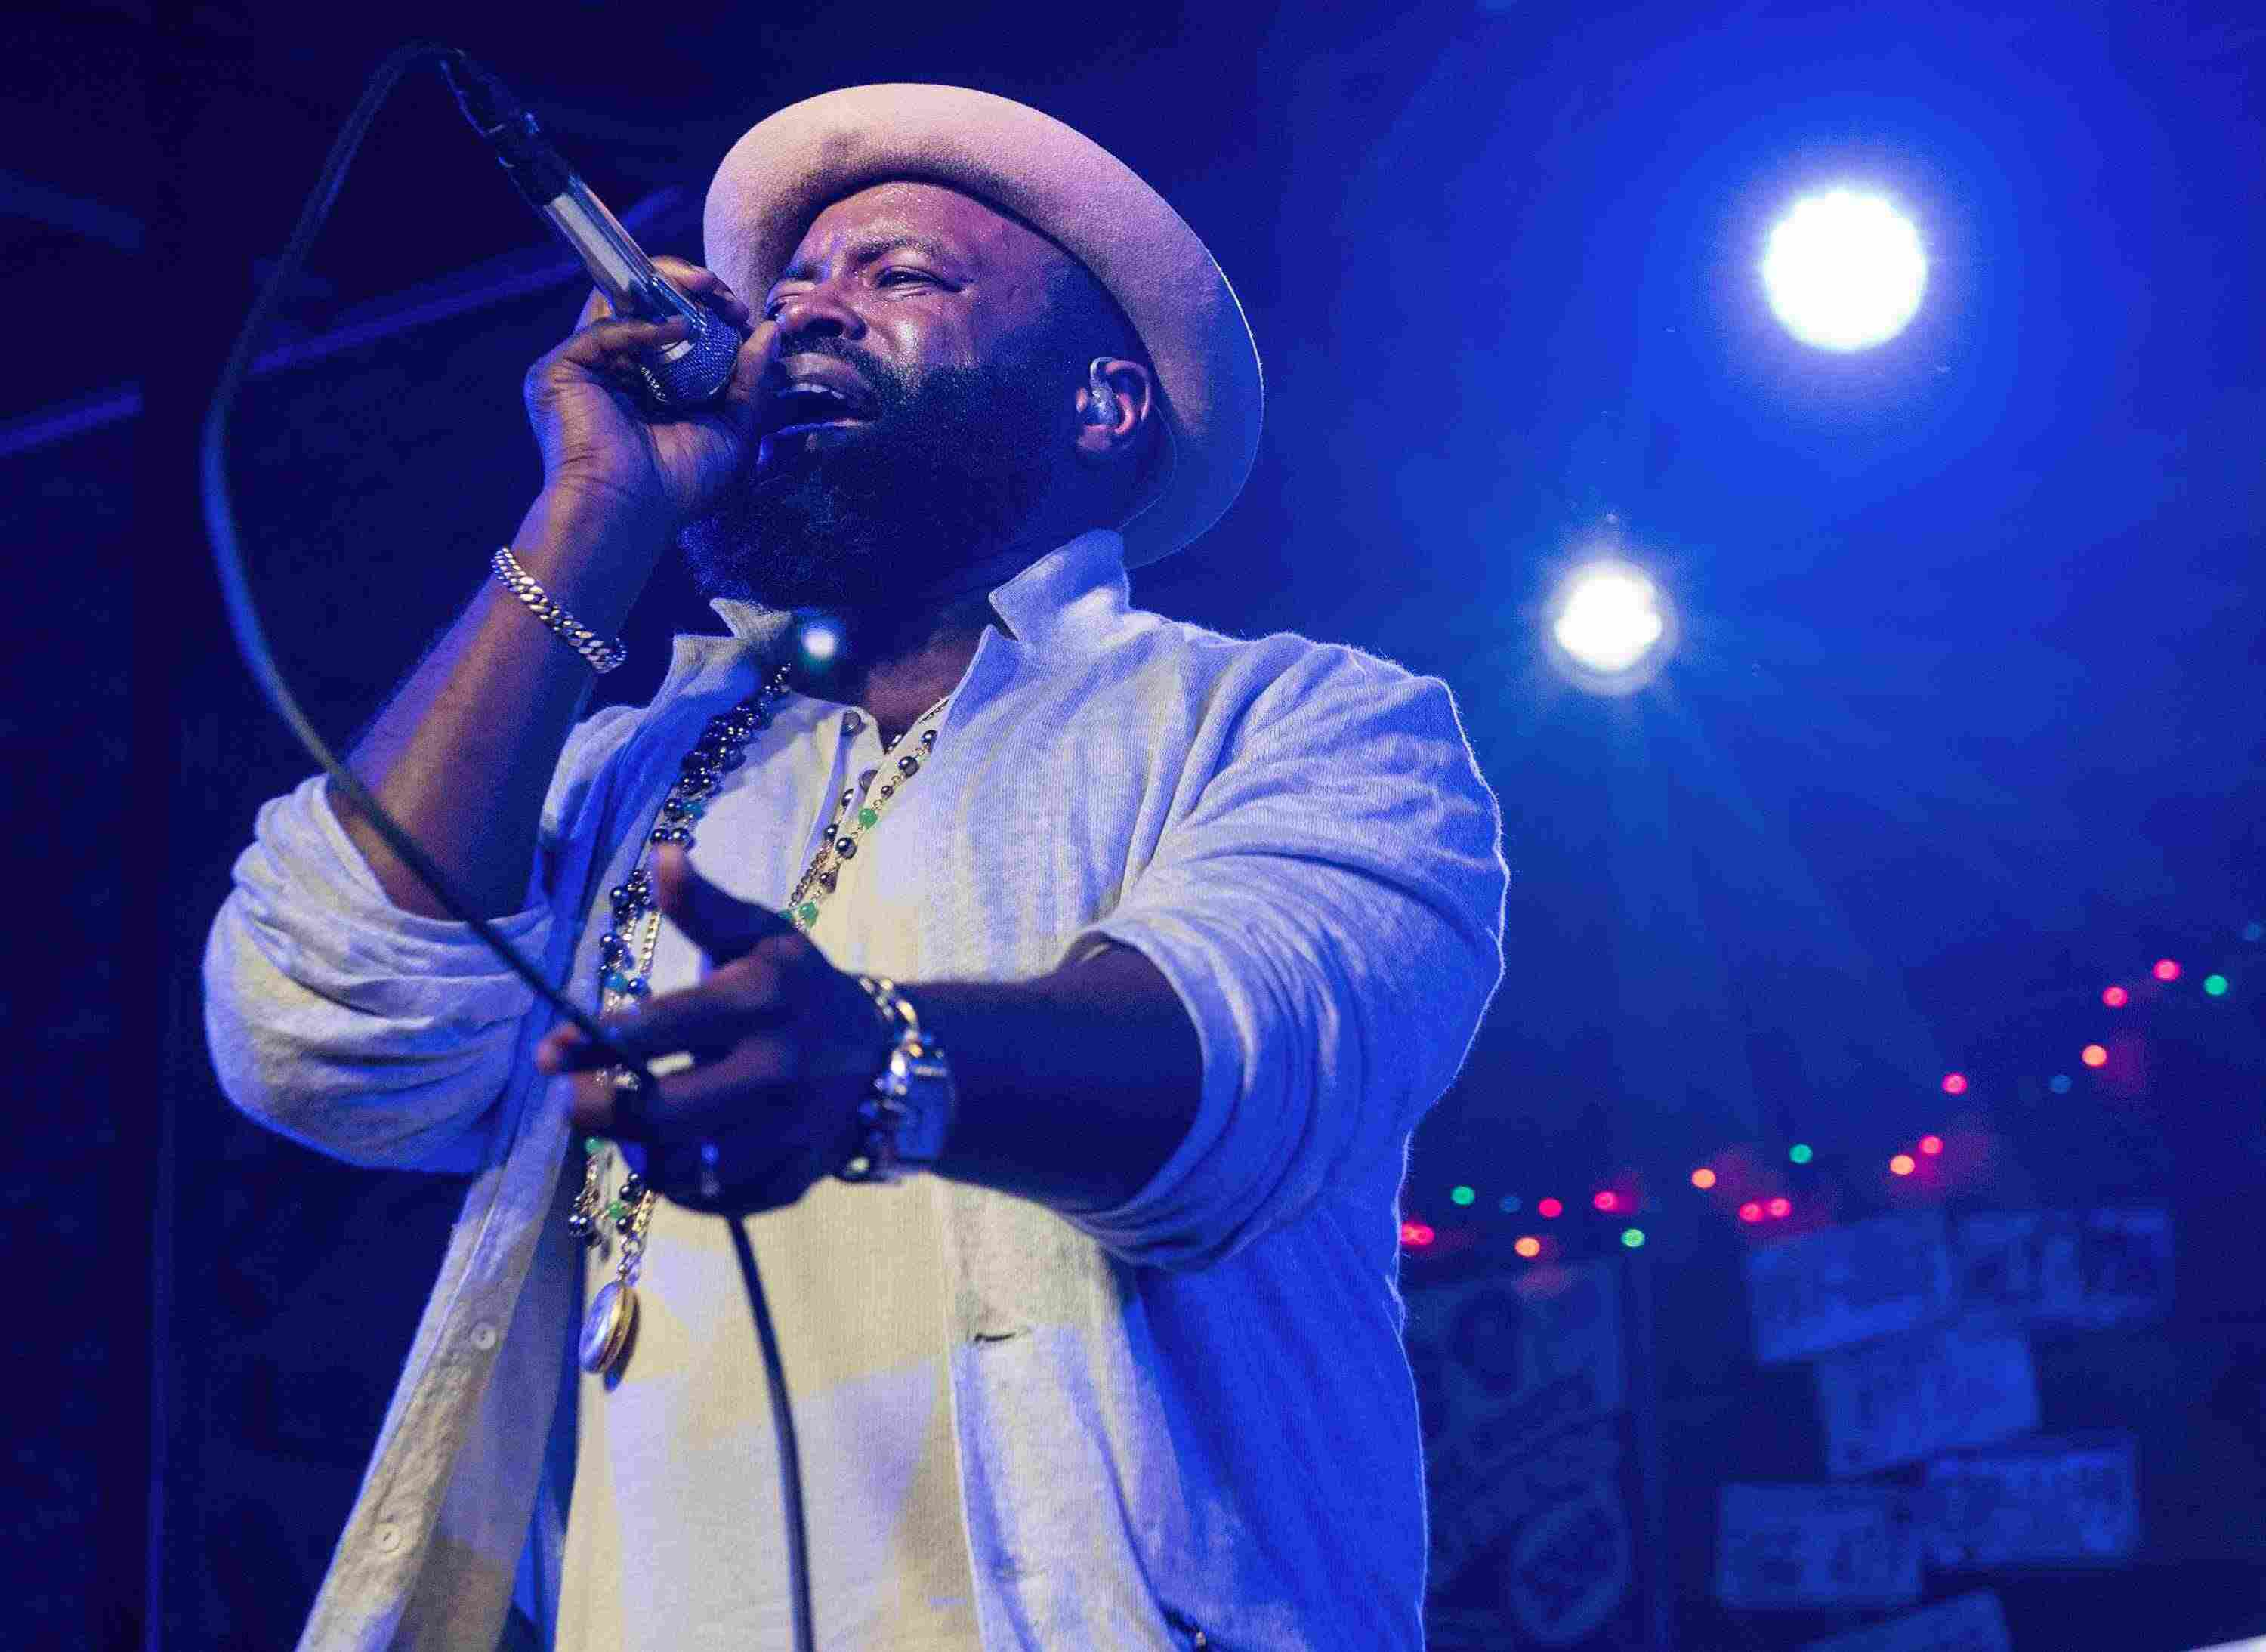 Man Arrested for Bomb Threat That Caused Cancellation of Roots' SXSW Show